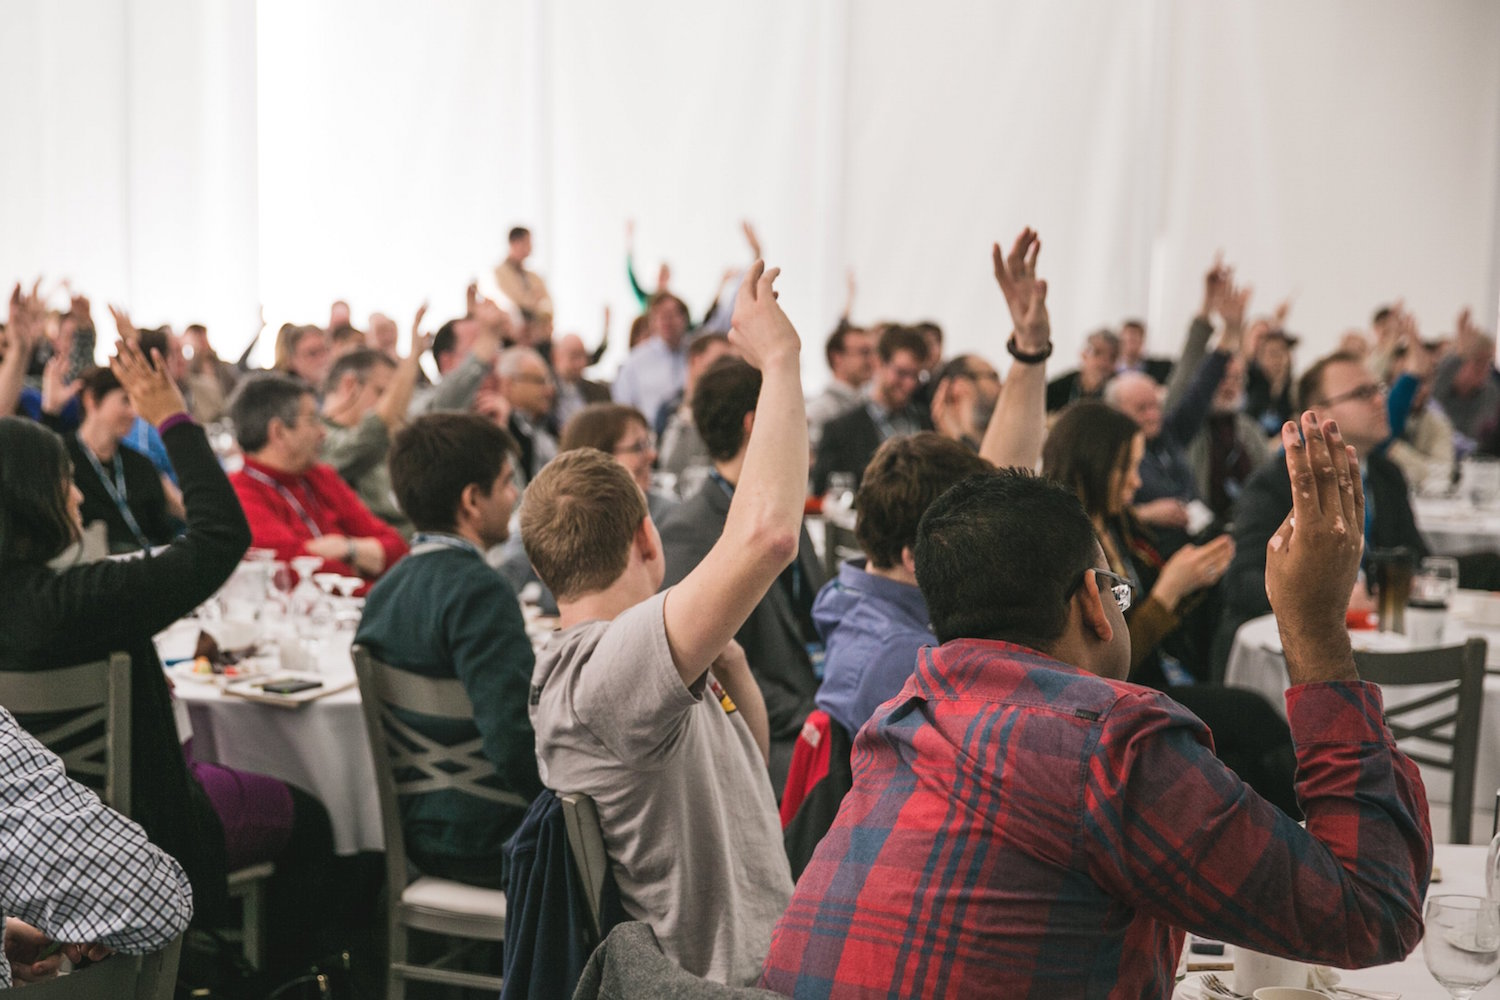 People raising their hands during a meeting.